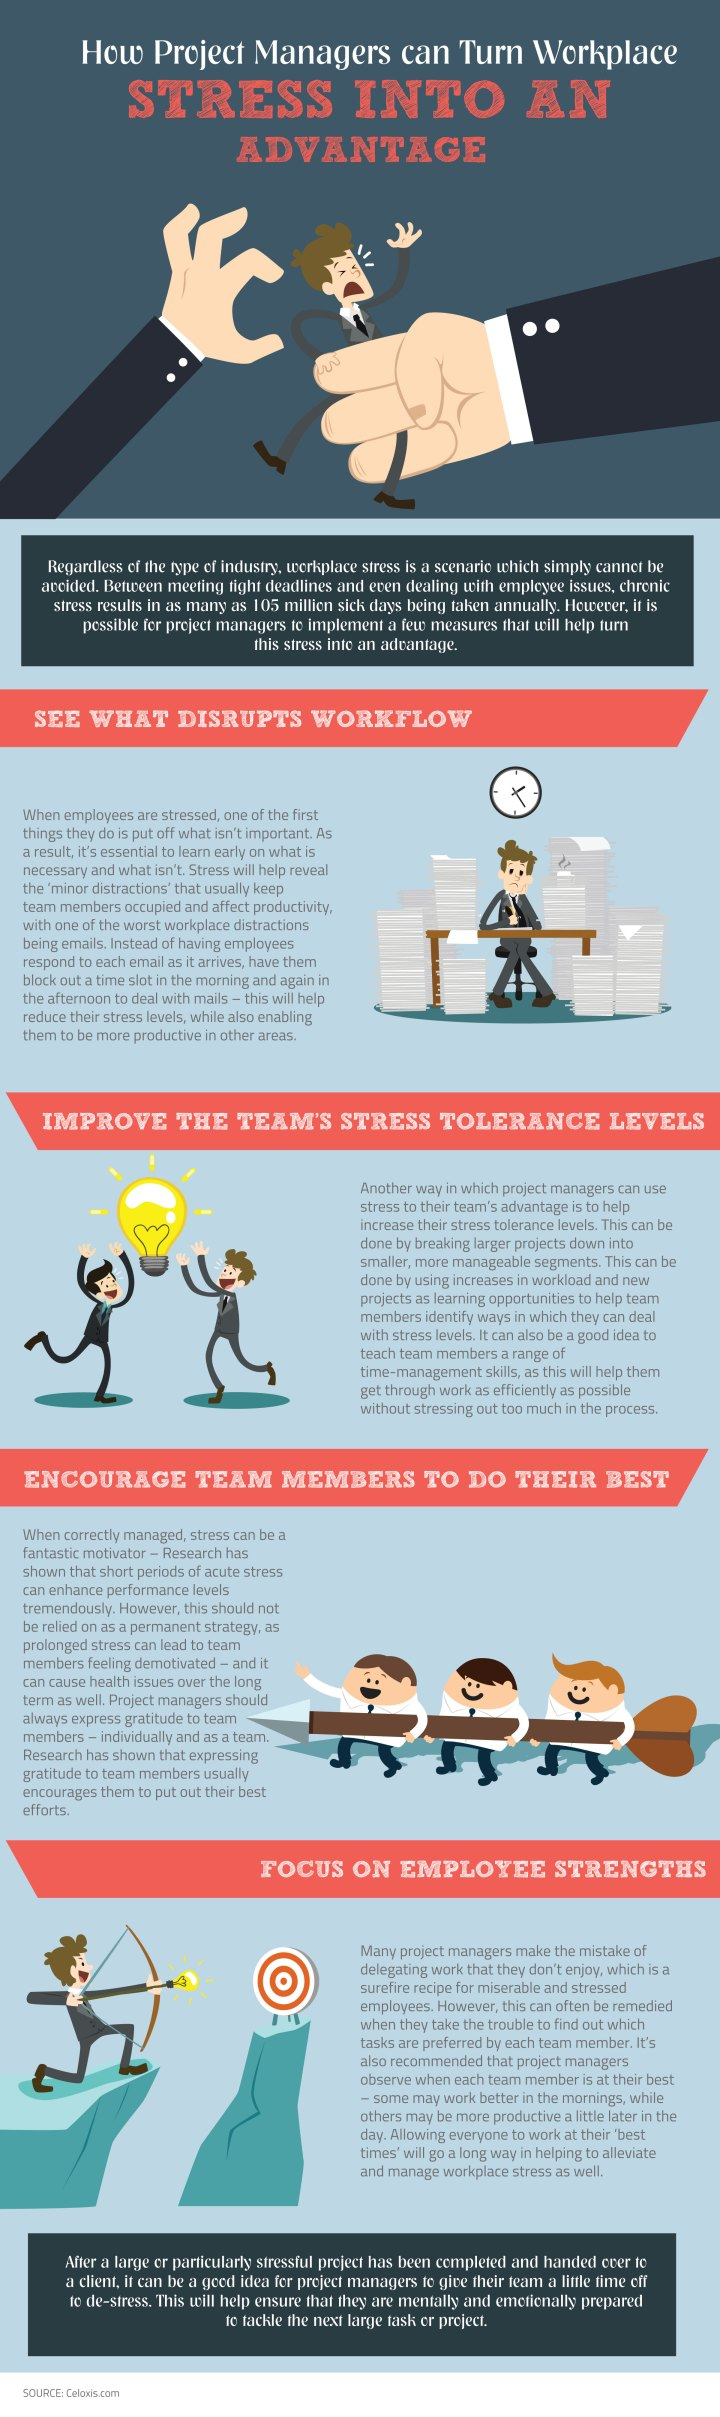 INFOGRAPHIC: How Project Managers can Turn Workplace Stress into an Advantage